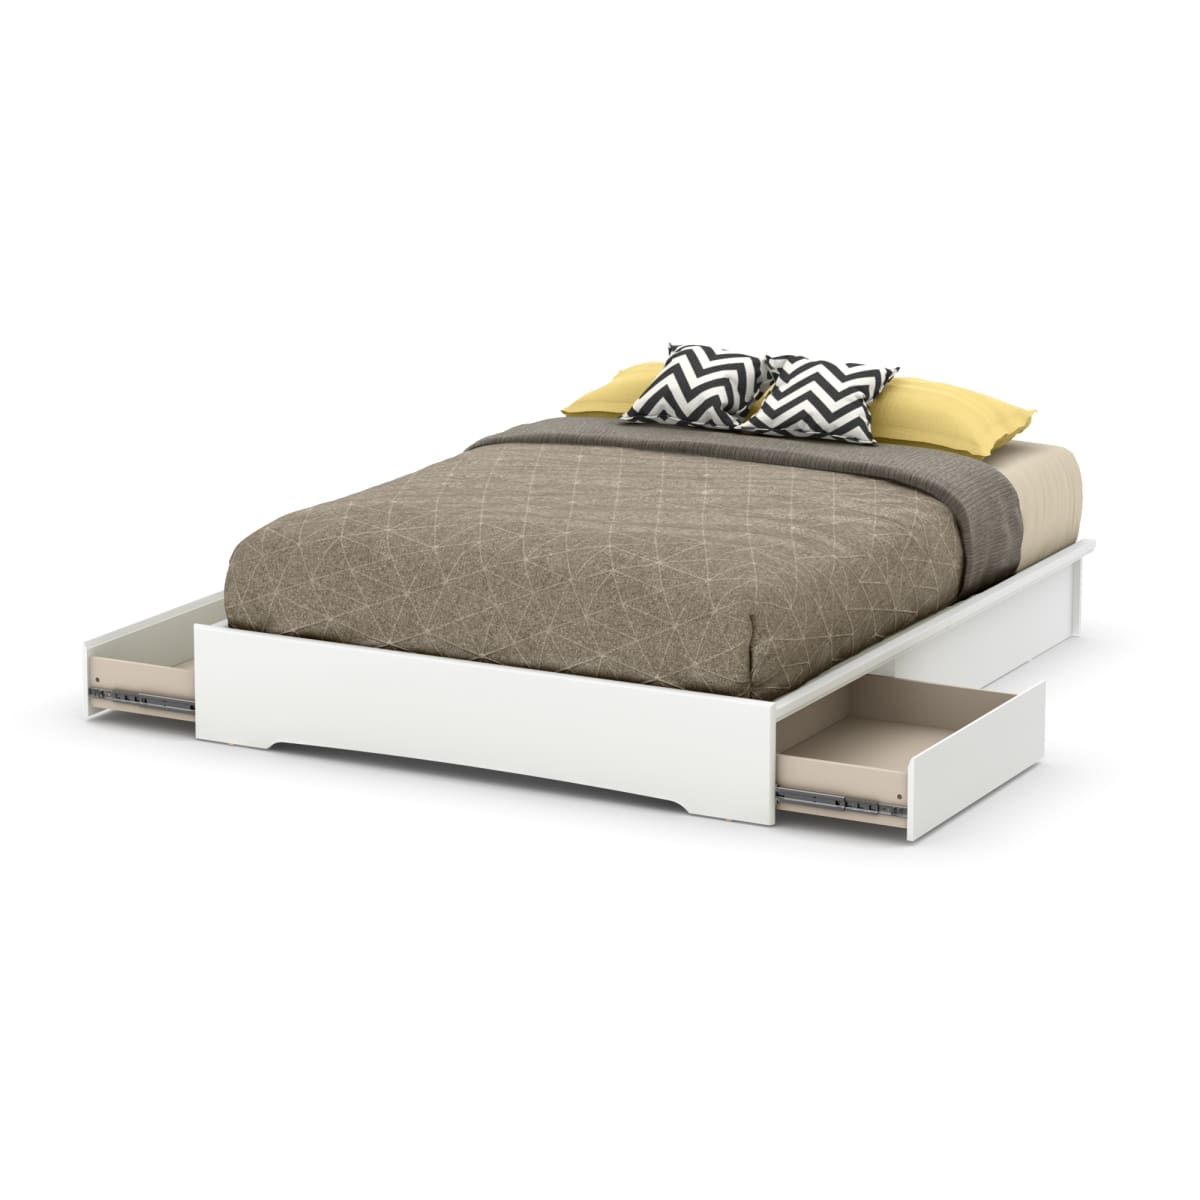 Step One Platform Bed With 2 Drawers, White Queen Size Platform Beds With Storage